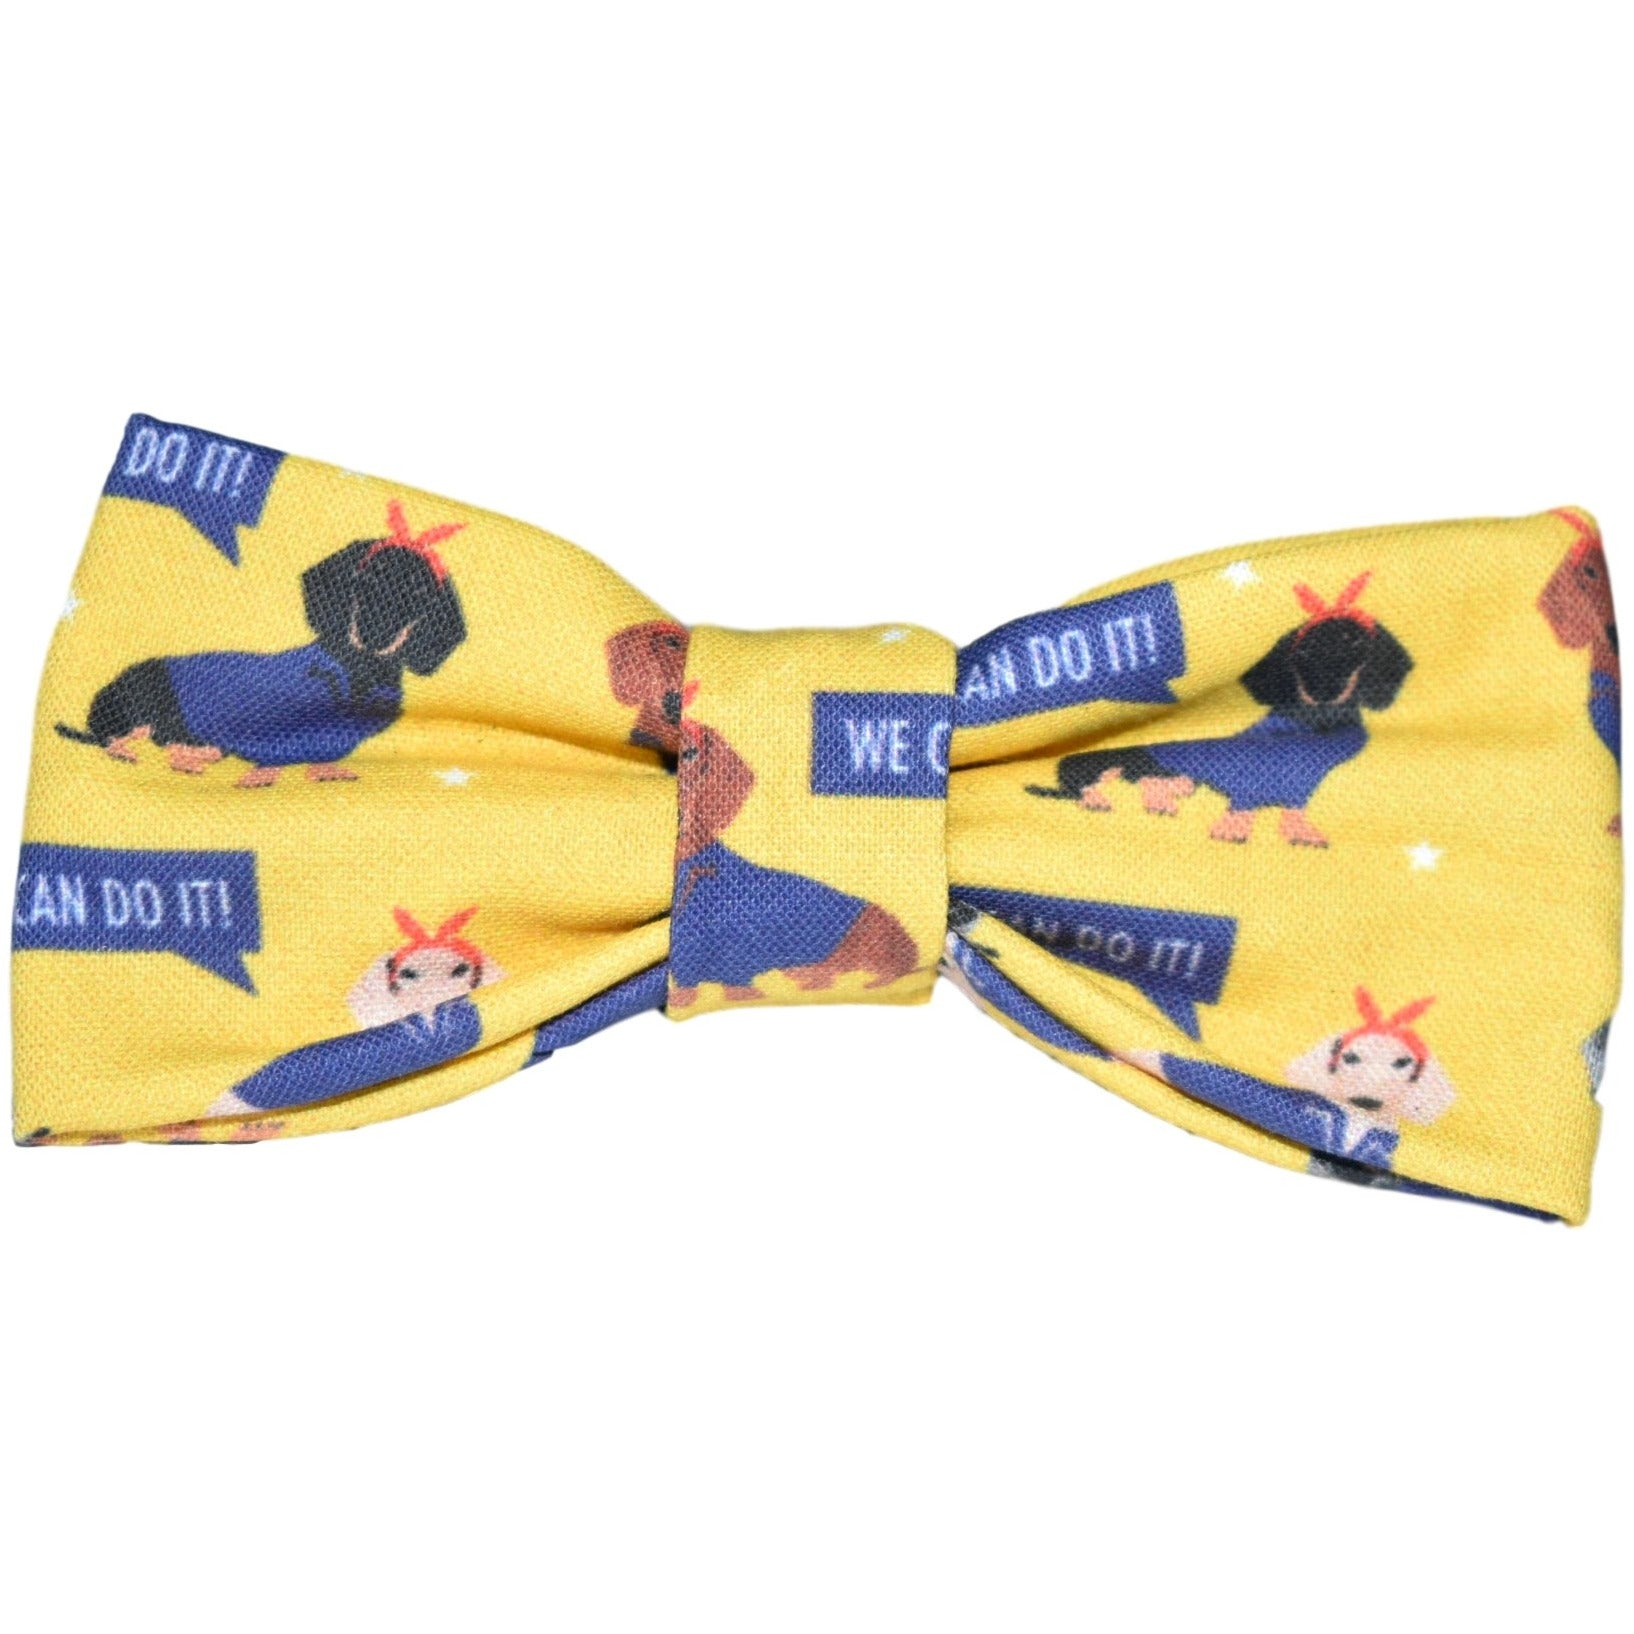 We Can Do It Dog Bow Tie